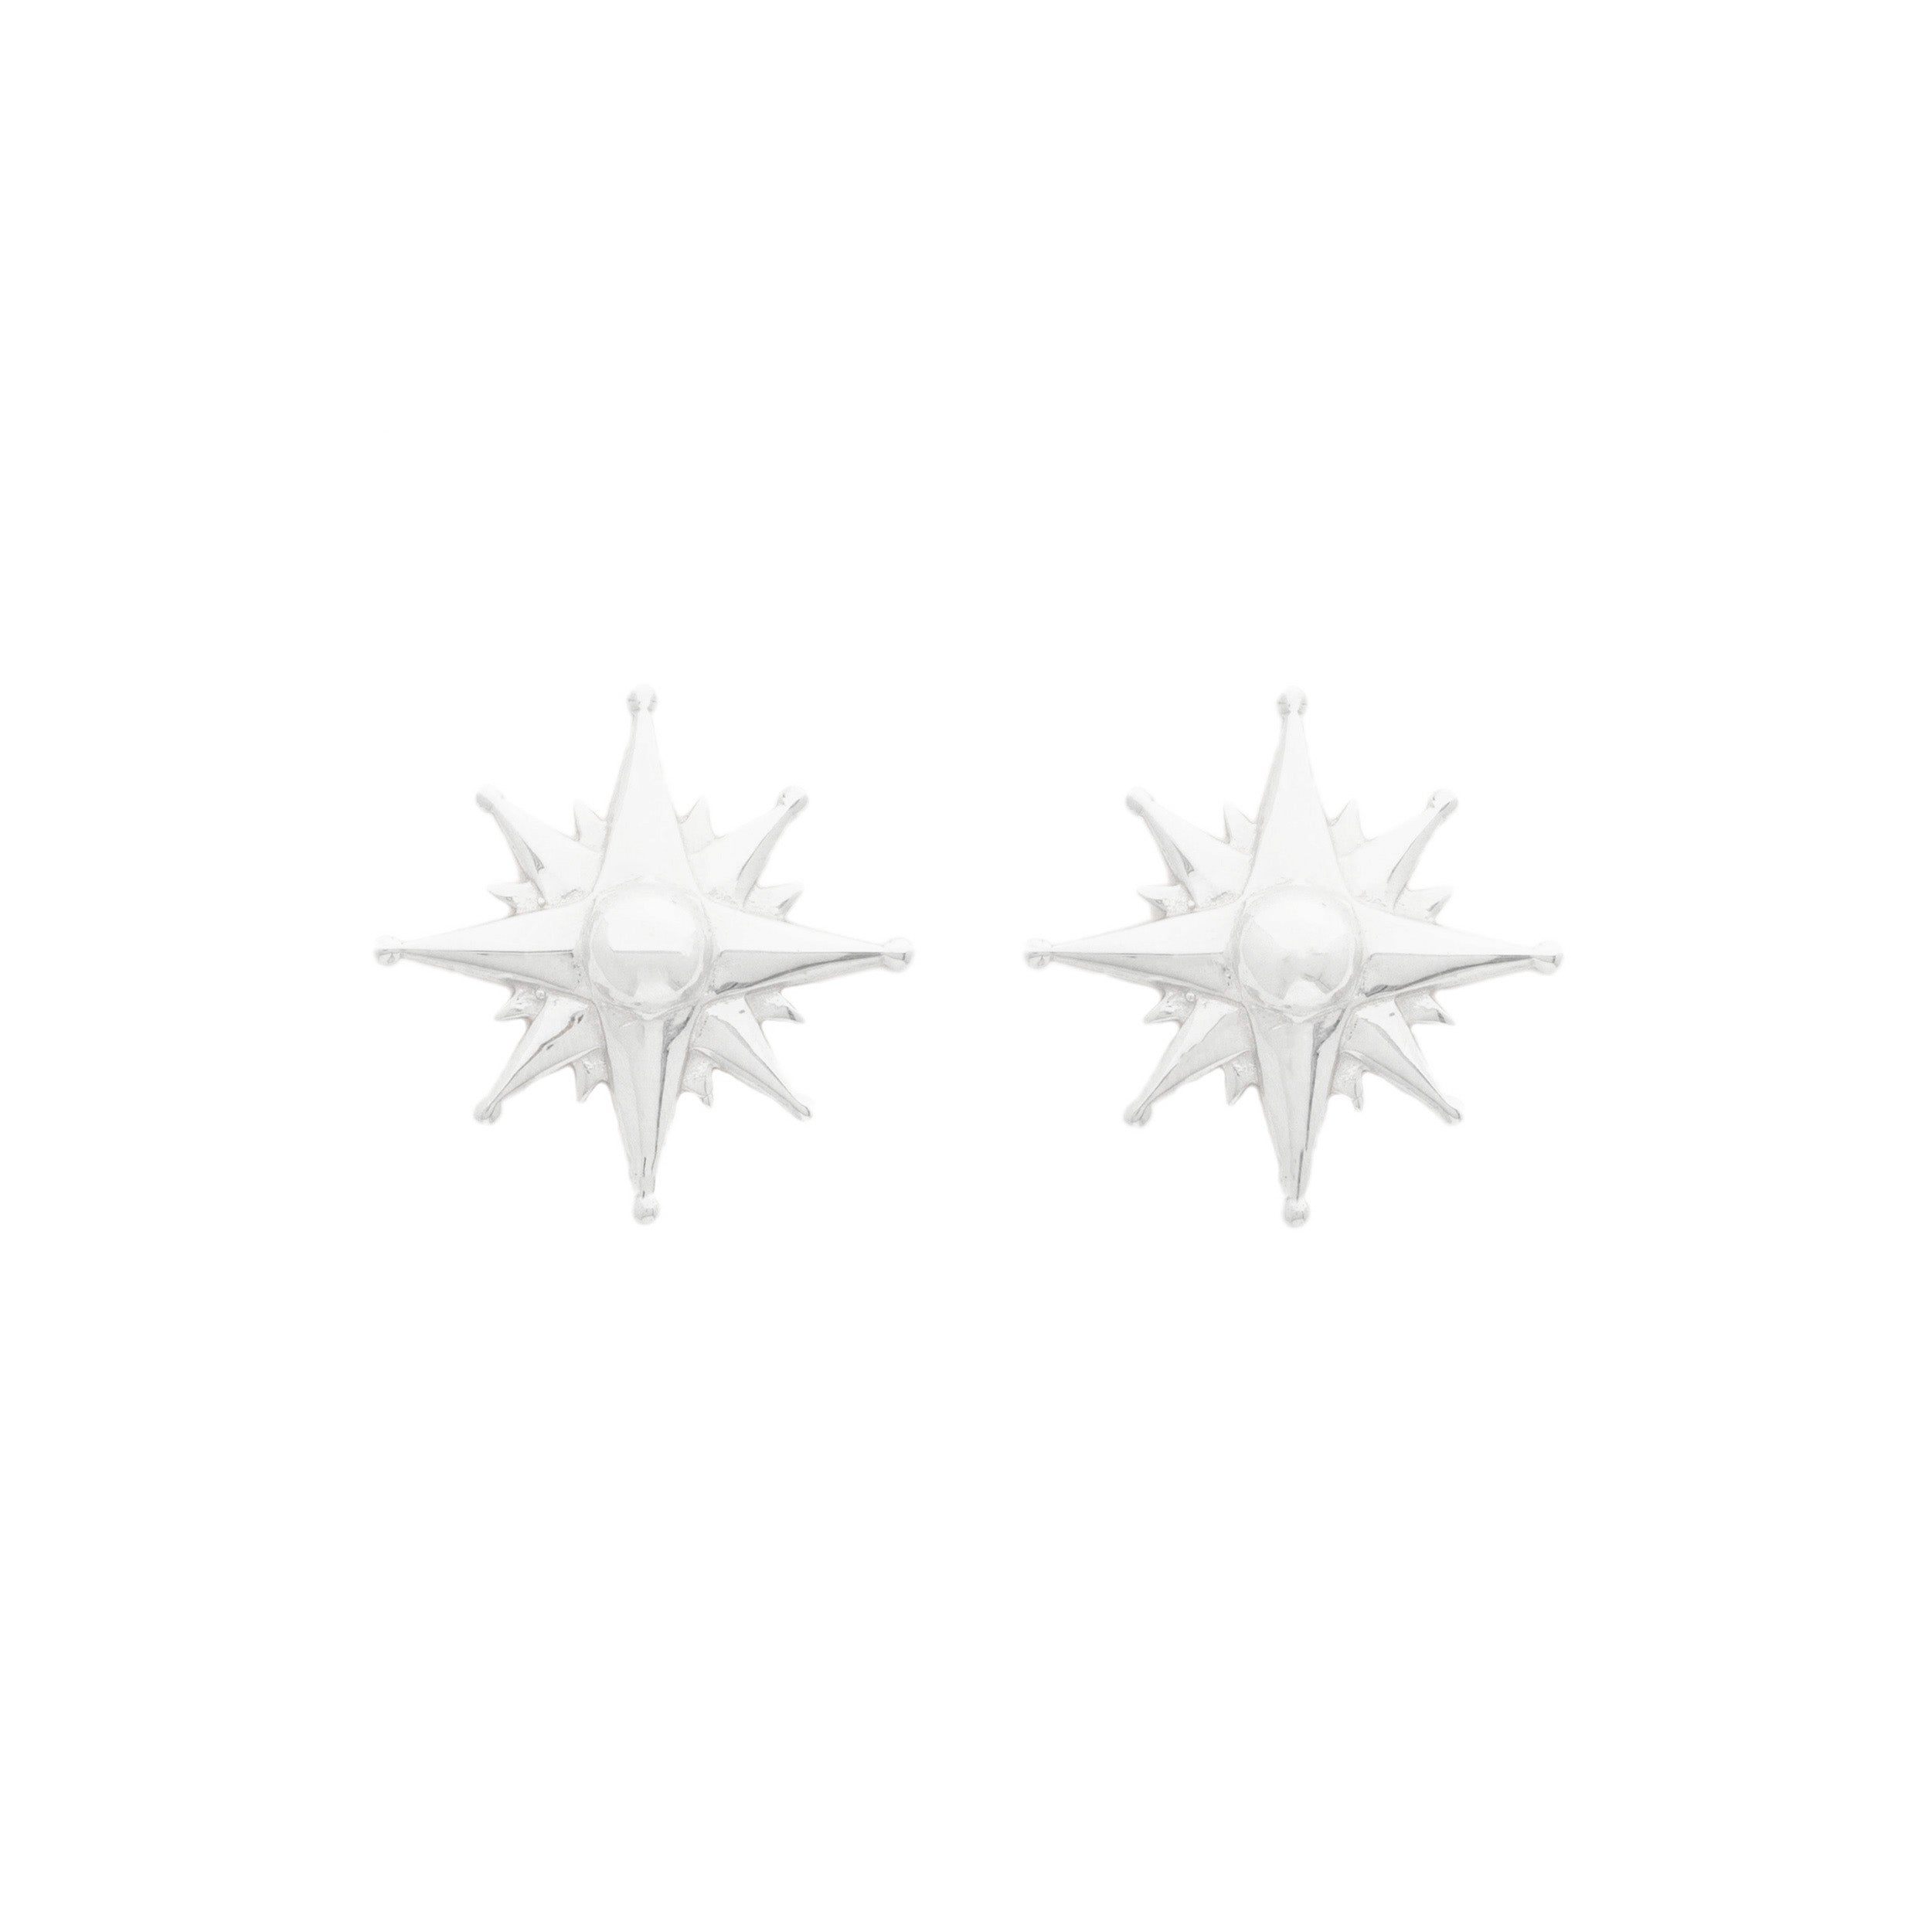 The F&B Compass Earrings